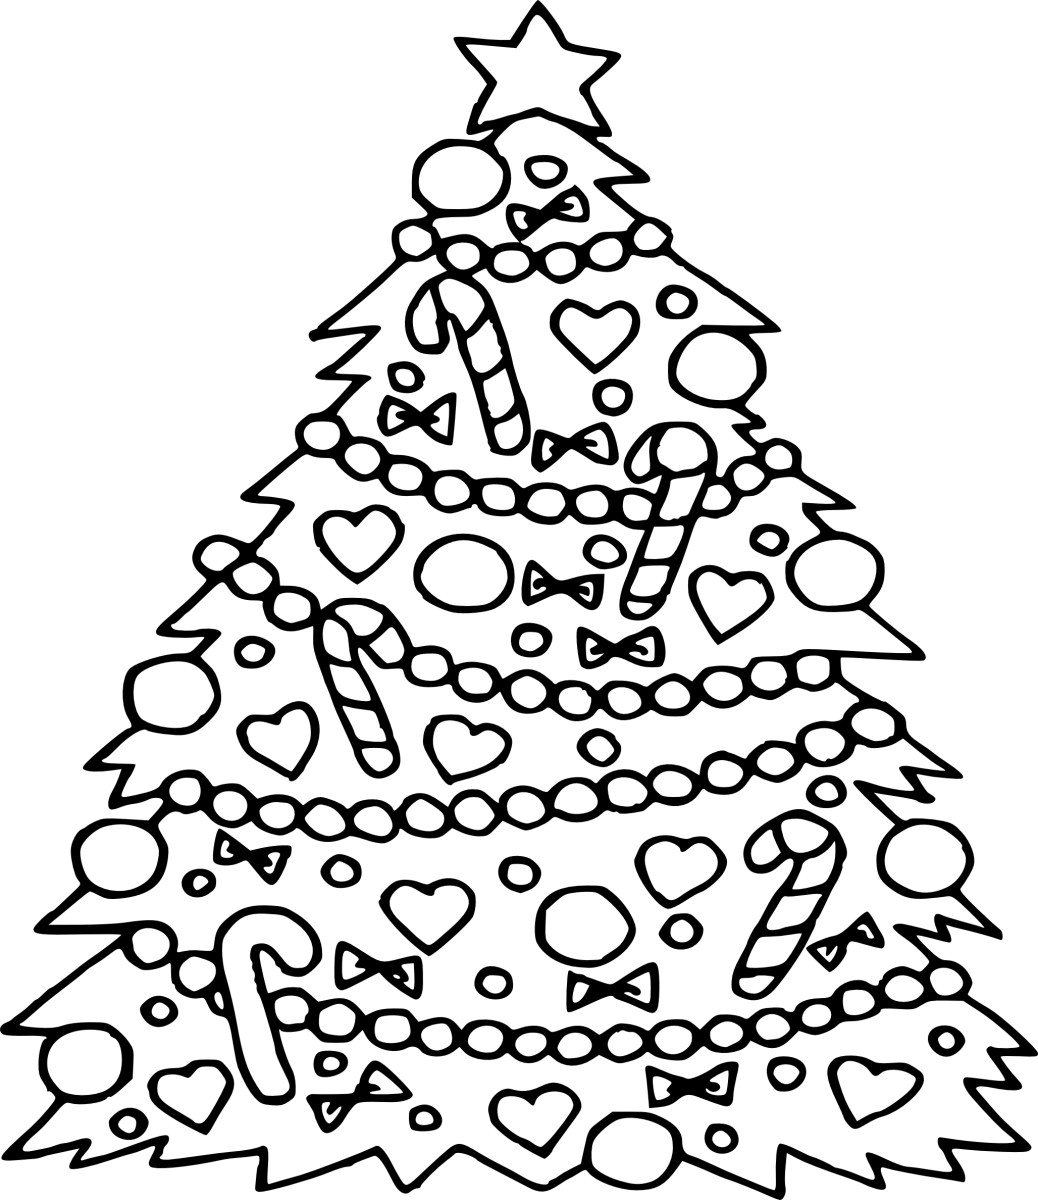 Free Christmas Tree Coloring Pages For Kids Drawing With Crayons